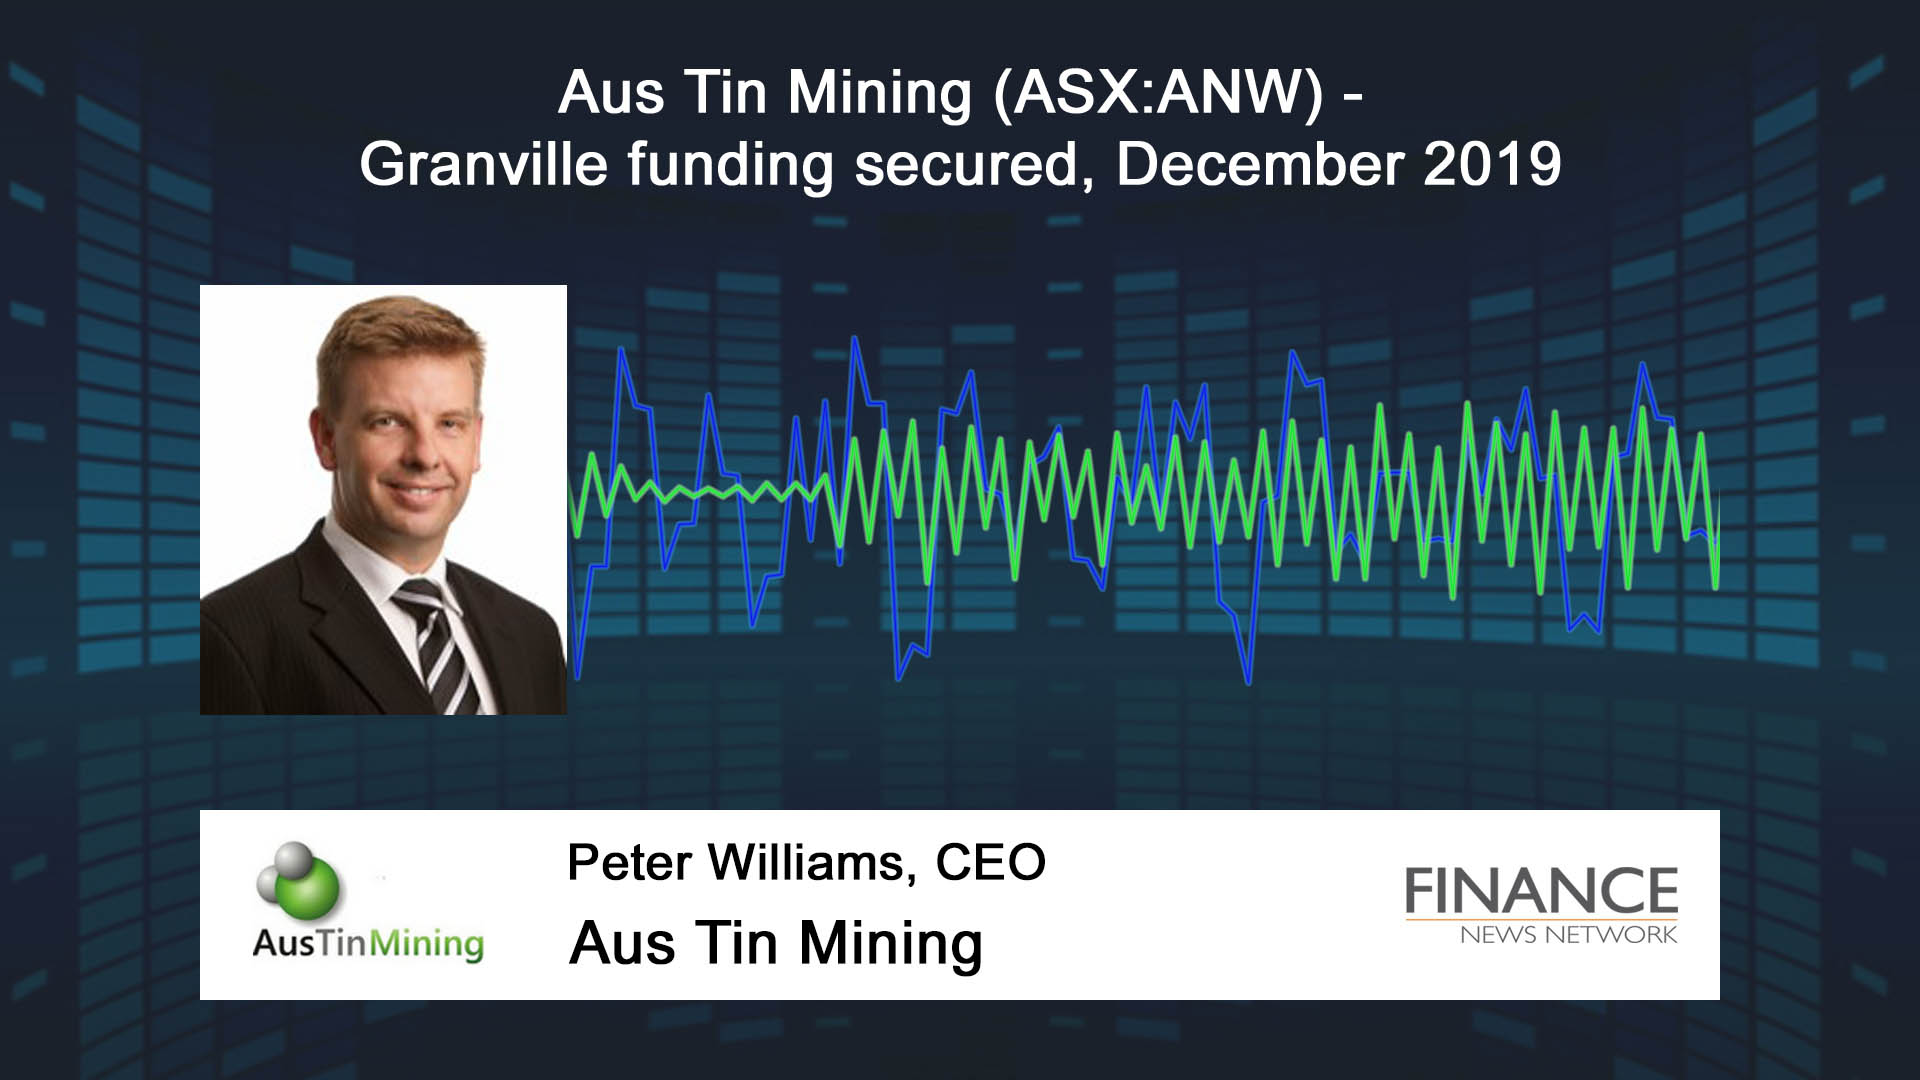 Aus Tin Mining (ASX:ANW) Granville funding secured